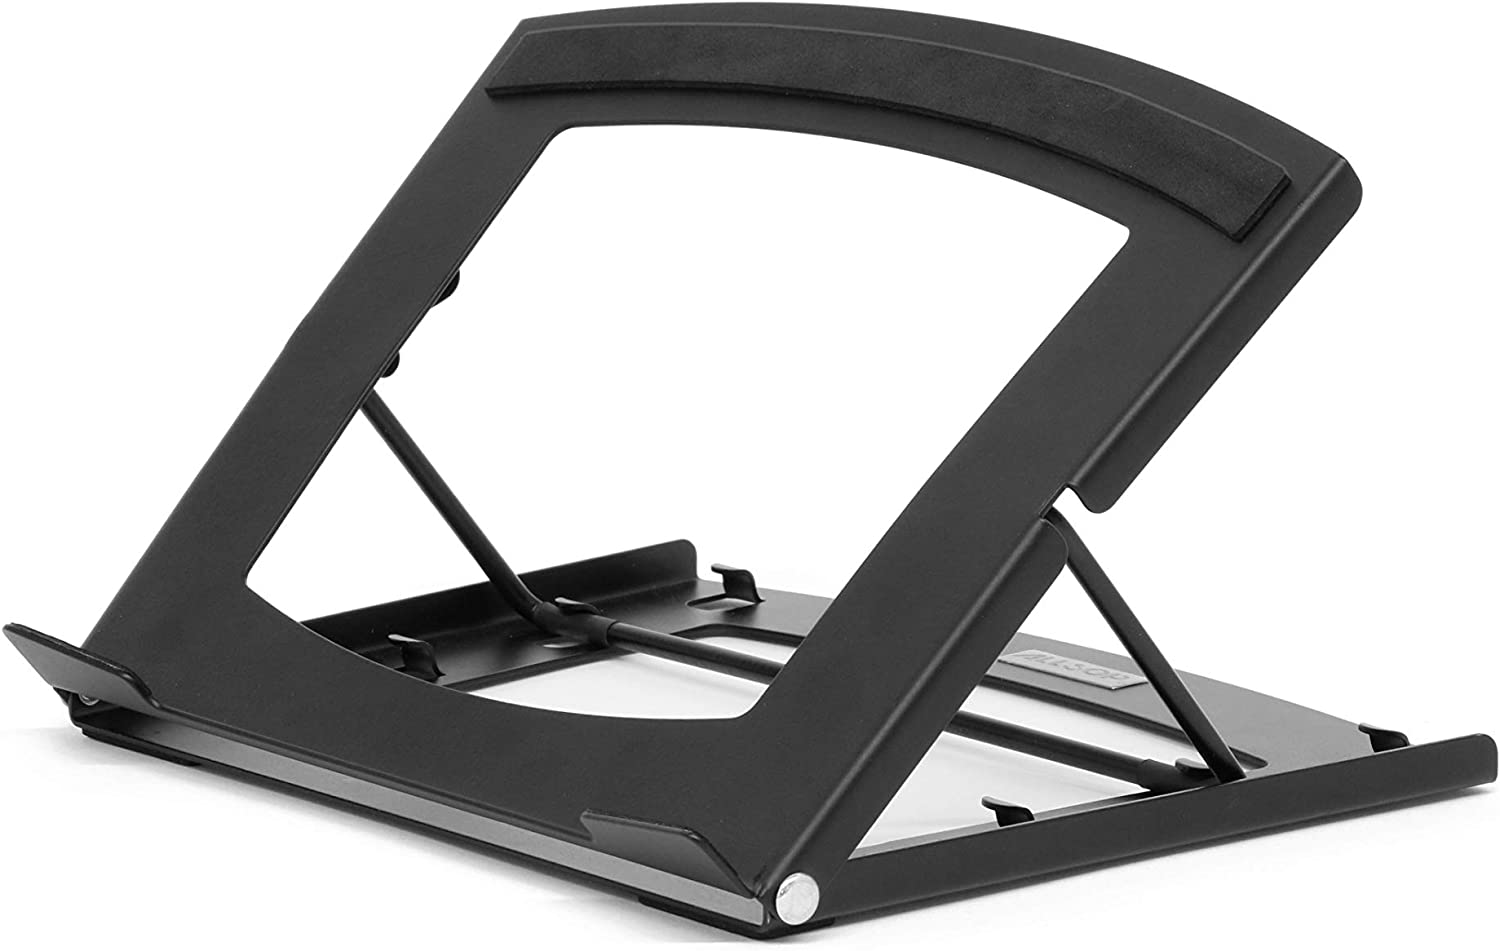 Allsop 31660 TriTilt Adjustable View Laptop//Table Stand for Ultrabook Notebook Ipad Ideal for Travel Black Tablet